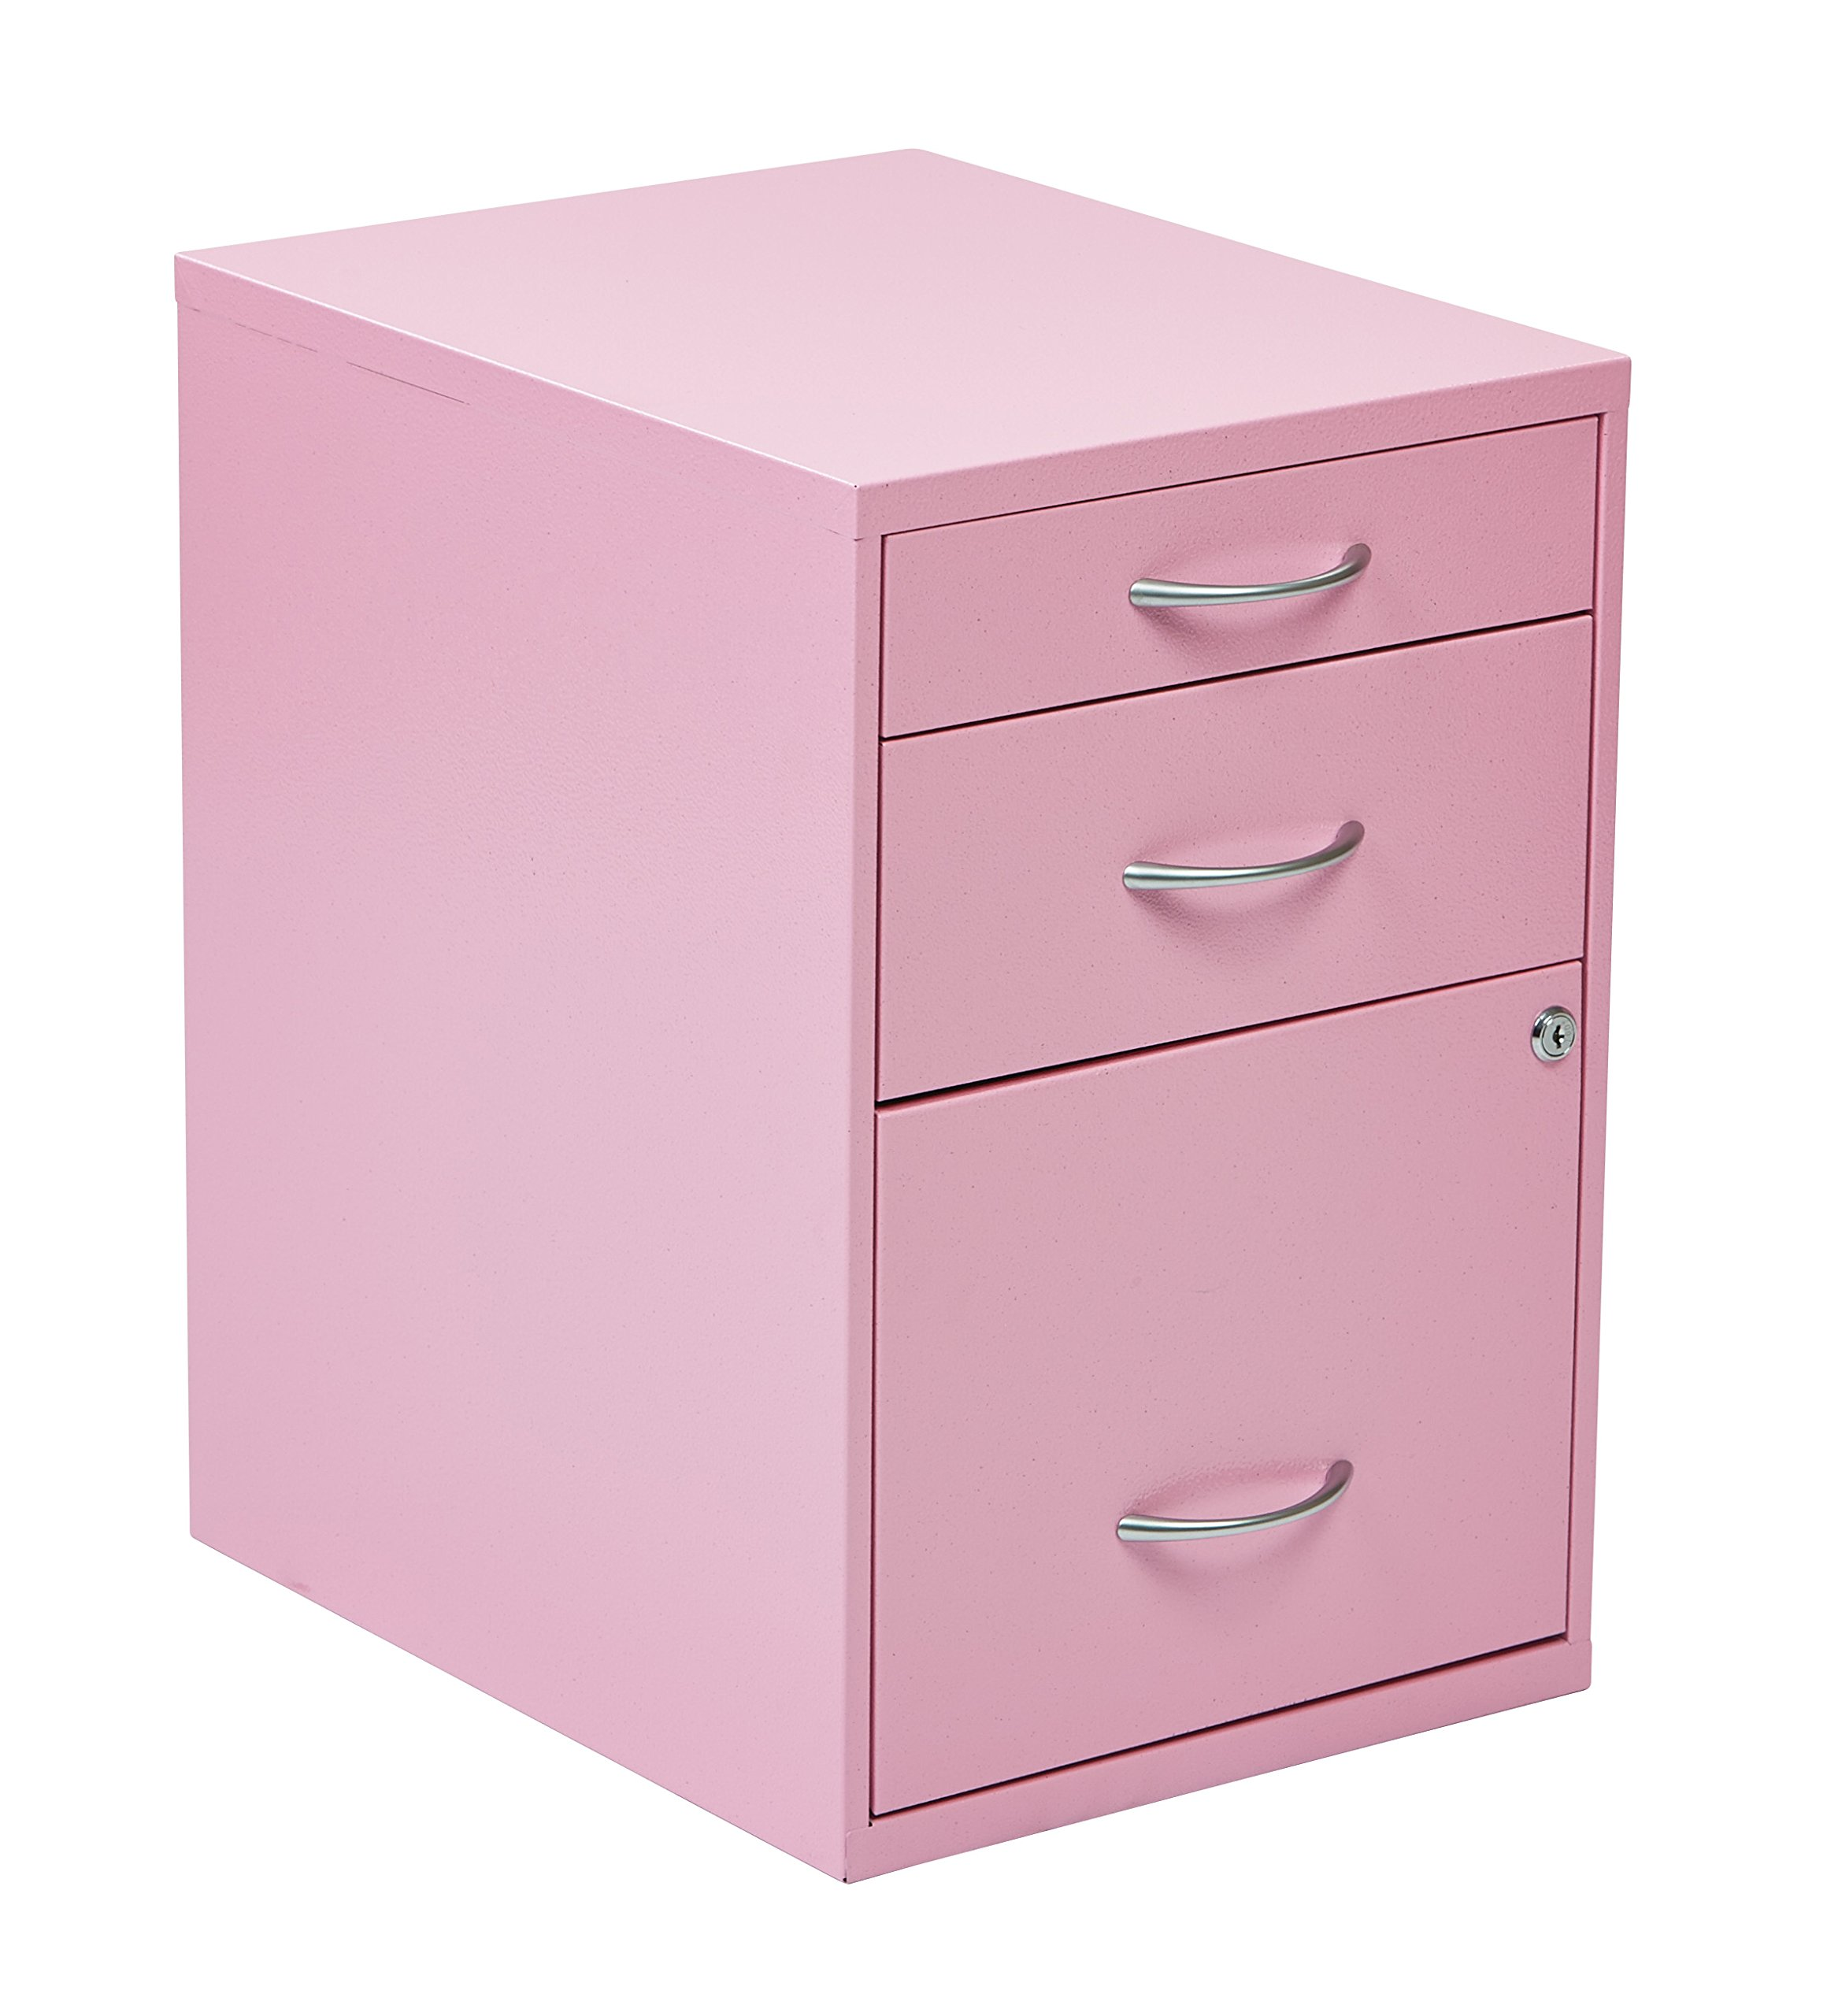 Office Star 3-Drawer Metal File Cabinet, Pink Finish